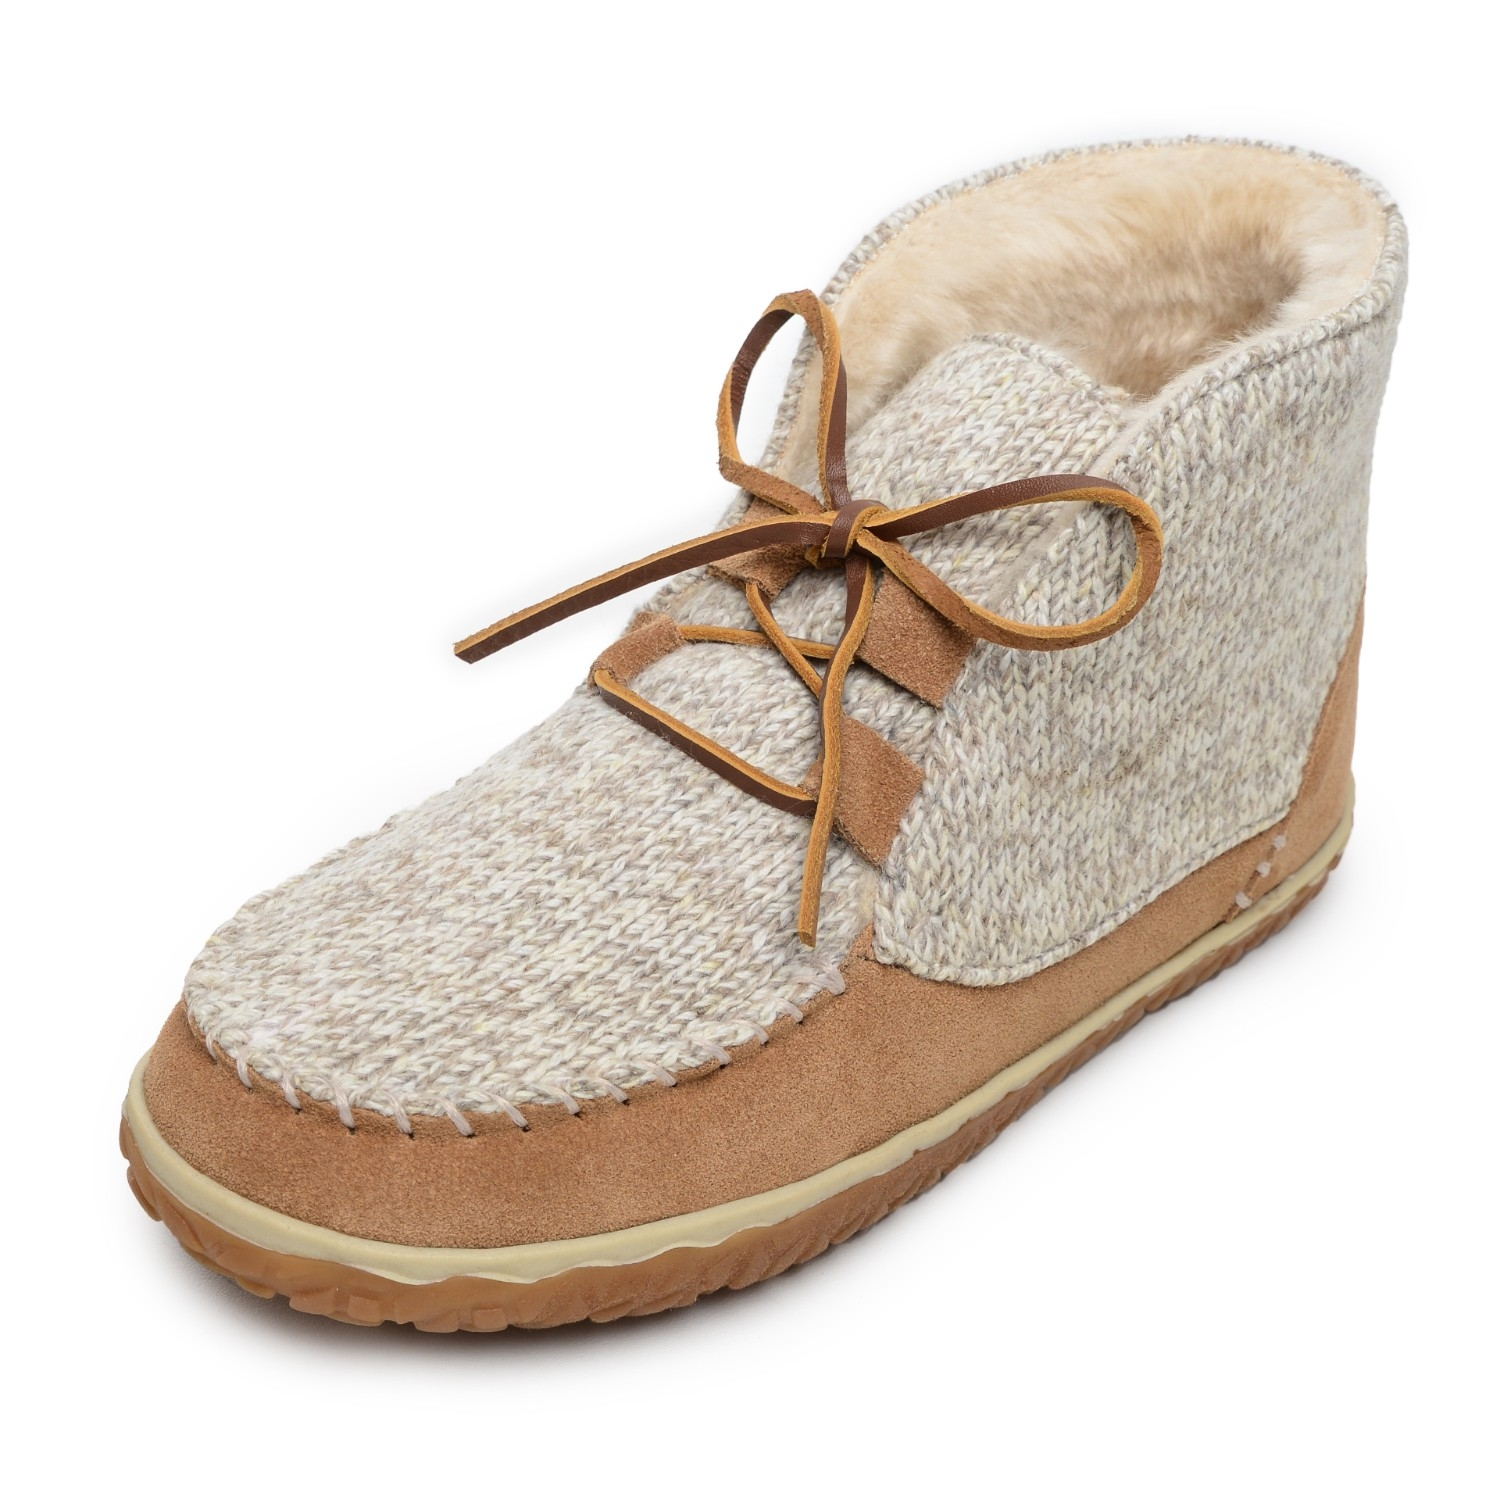 Minnetonka Moccasins 40141 - Women's Torrey - Pile Lined Boot Slipper - Cinnamon